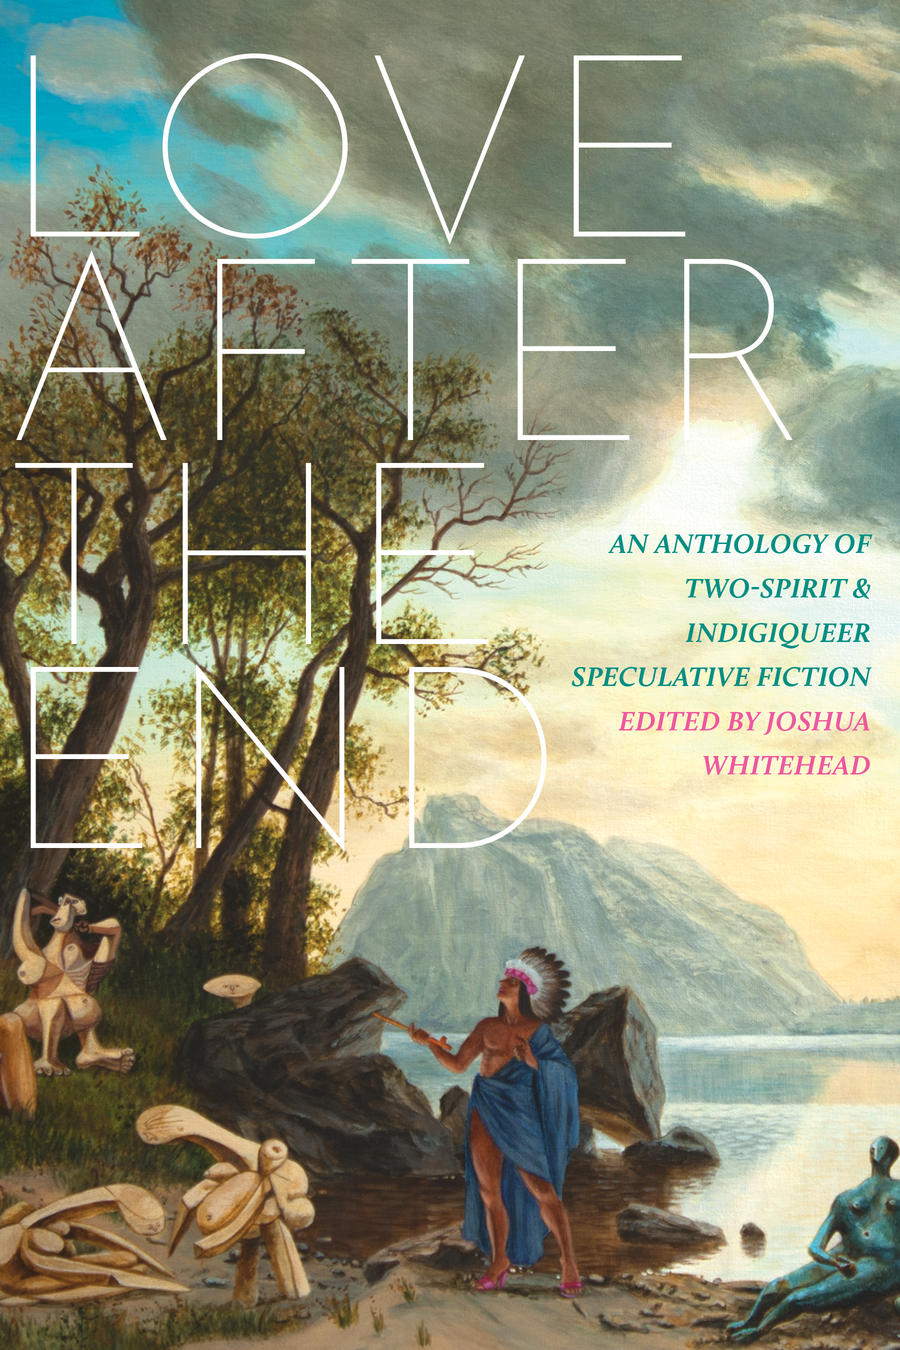 Love-after-the-end-:-an-anthology-of-two-spirit-&-indigiqueer-speculative-fiction-/-edited-by-Joshua-Whitehead.